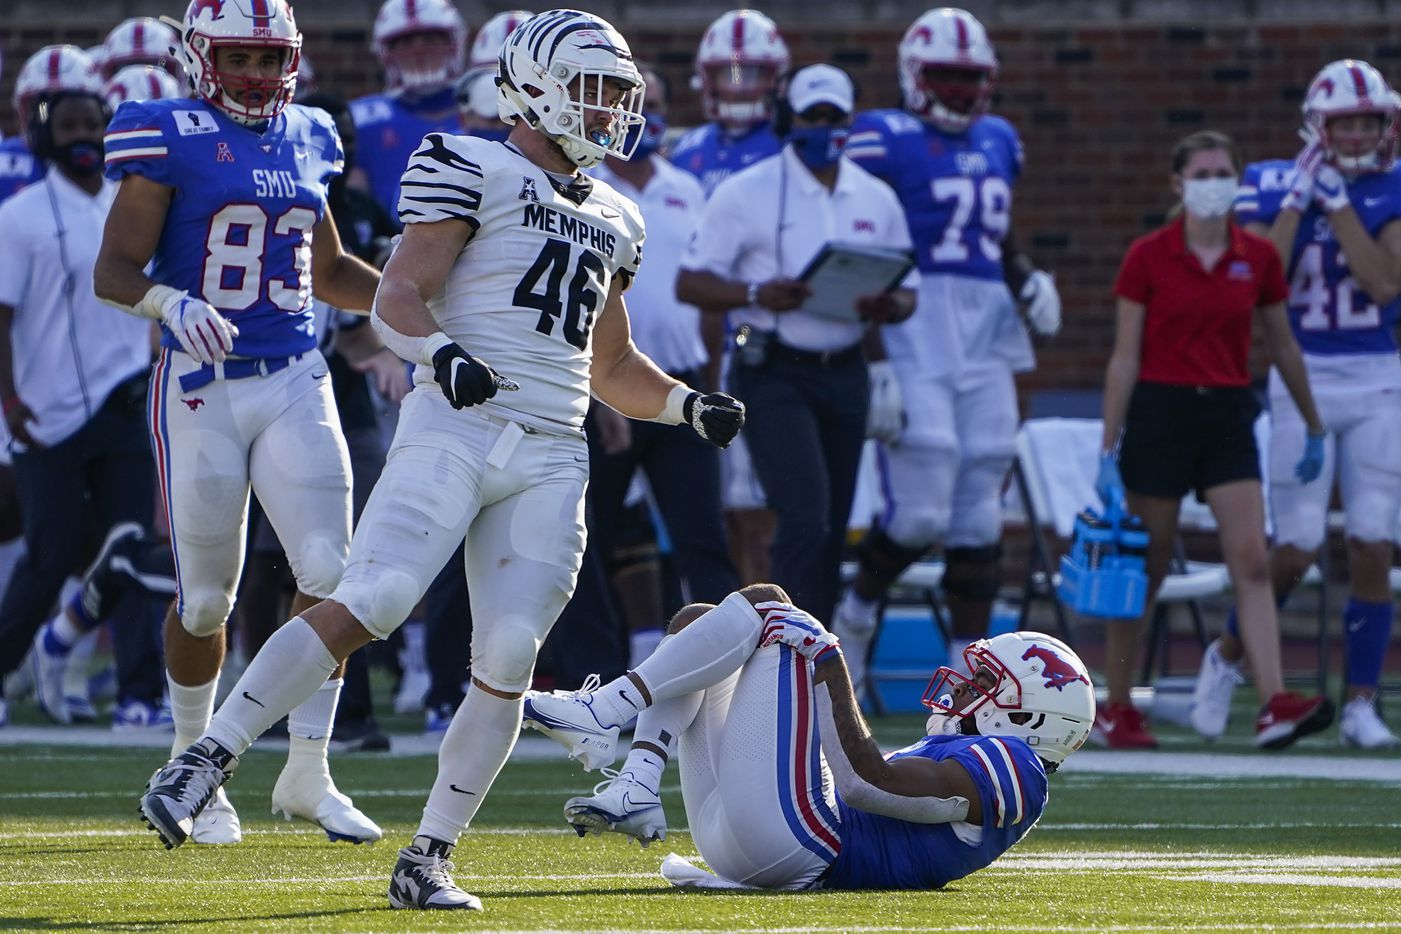 SMU wide receiver Reggie Roberson Jr. lies on the ground after being injured during the second half of an NCAA football game against Memphis at Ford Stadium on Saturday, Oct. 3, 2020, in Dallas.